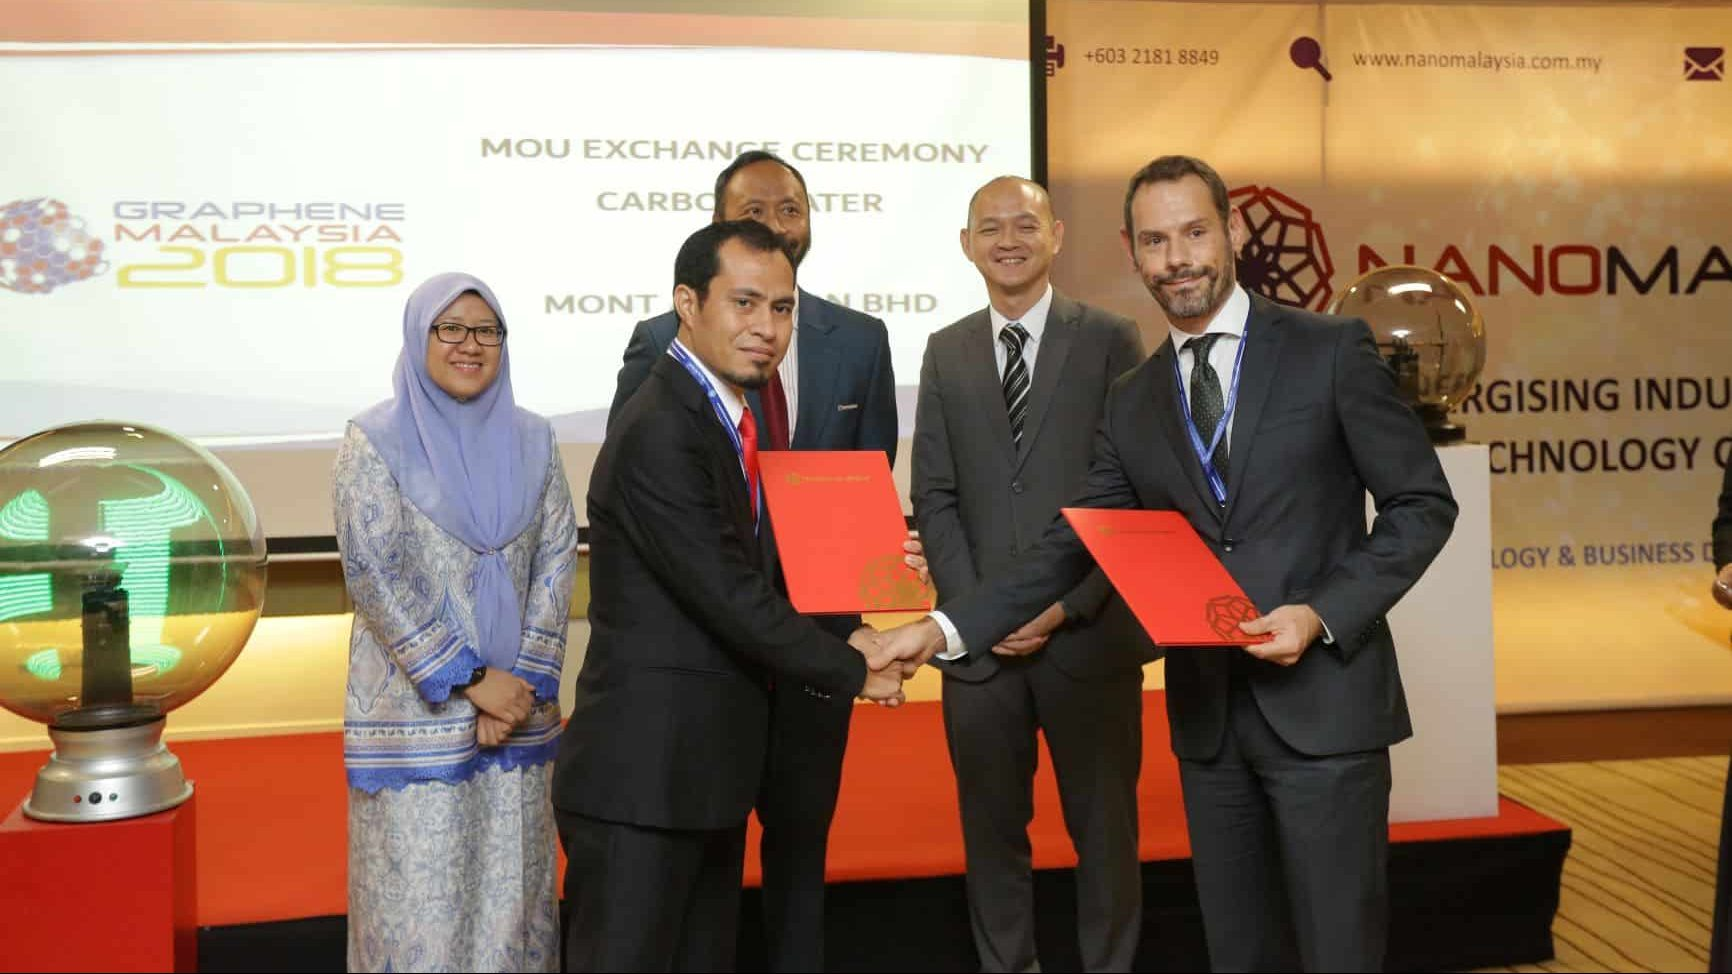 Carbon Waters' graphene in Malaysia